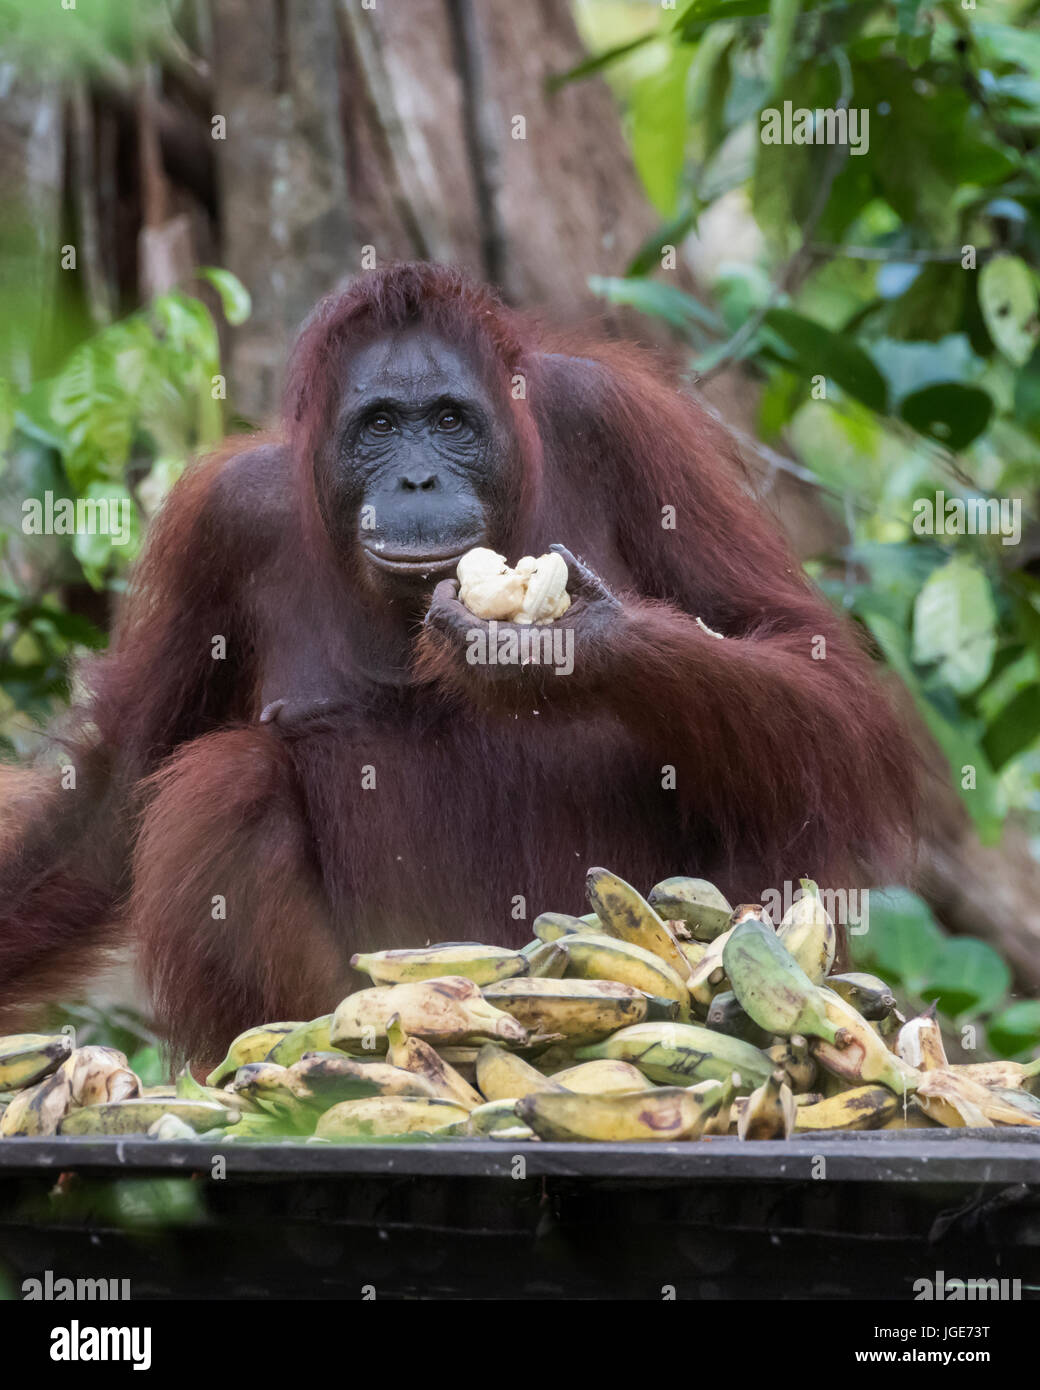 Female orangutan trying to eat her way through a pile of bananas at a feeding station, Tanjung Puting NP, Indonesia - Stock Image